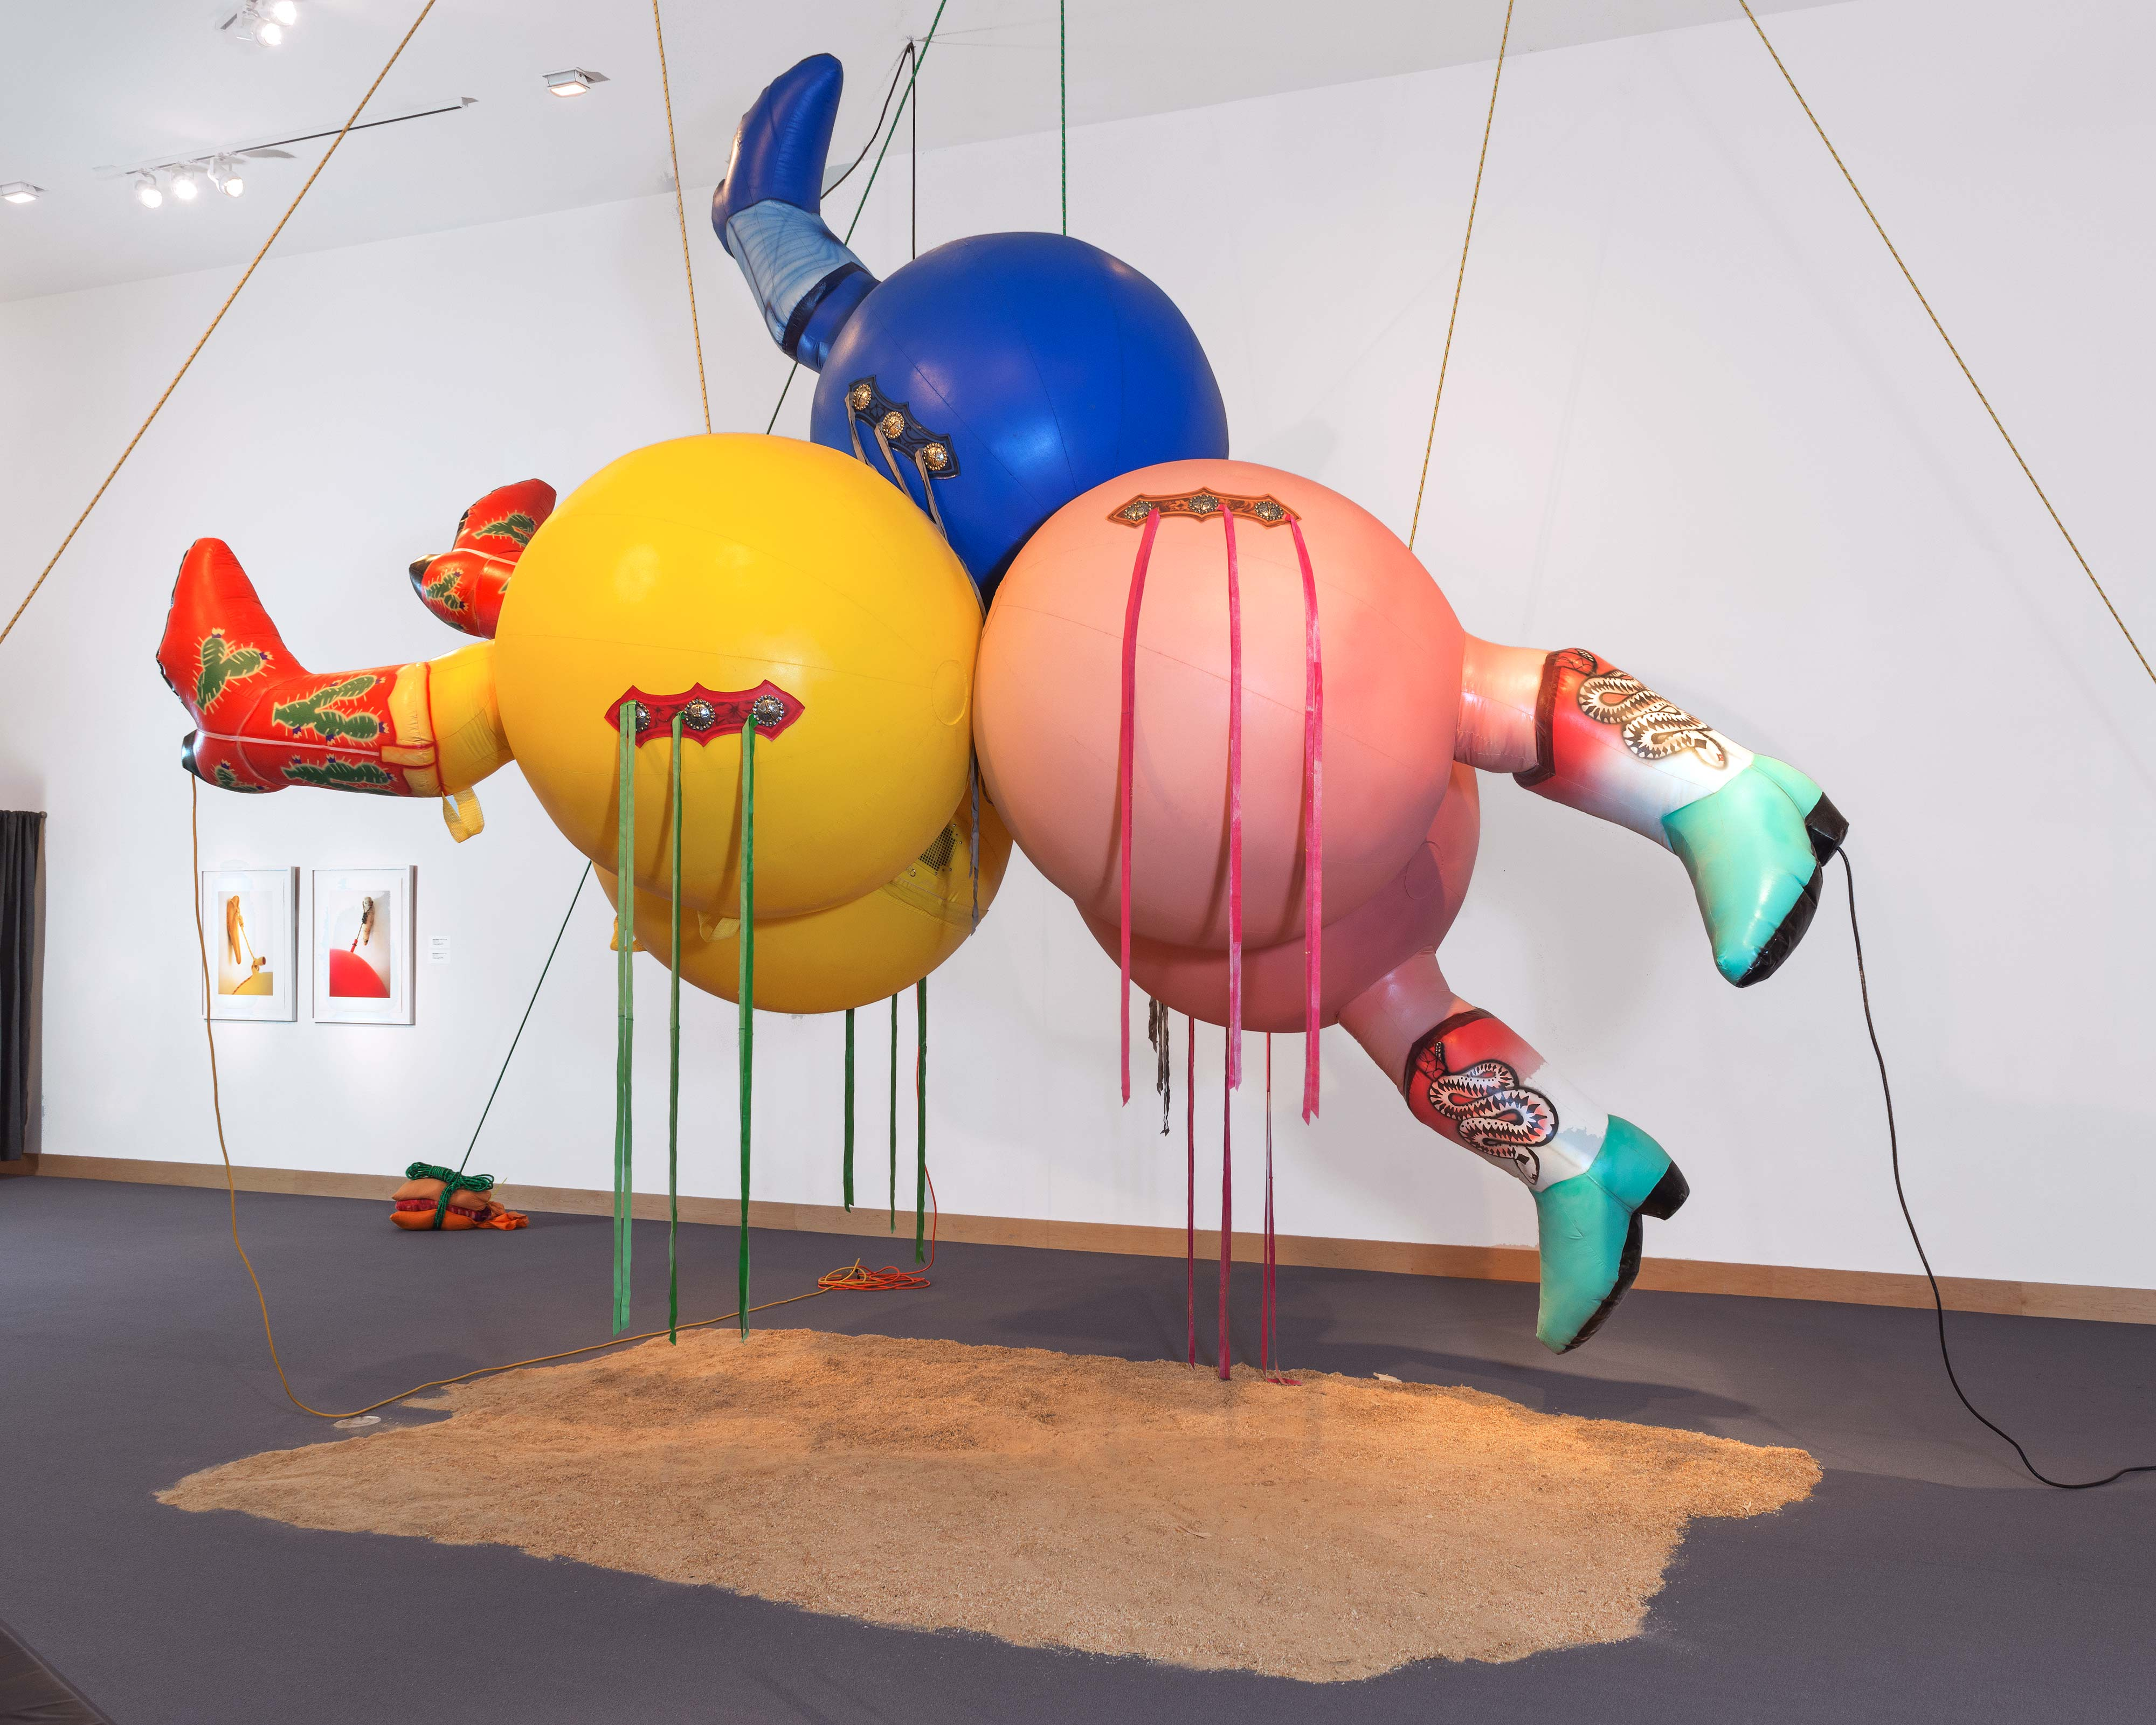 Nancy Davidson<br>Dust Up<br>2012<br>Vinyl coated nylon, rope, leather, blower, sandbags, sawdust<br>20 x 20 x 16 ft<br>installation view at the Boca Raton Museum of Art